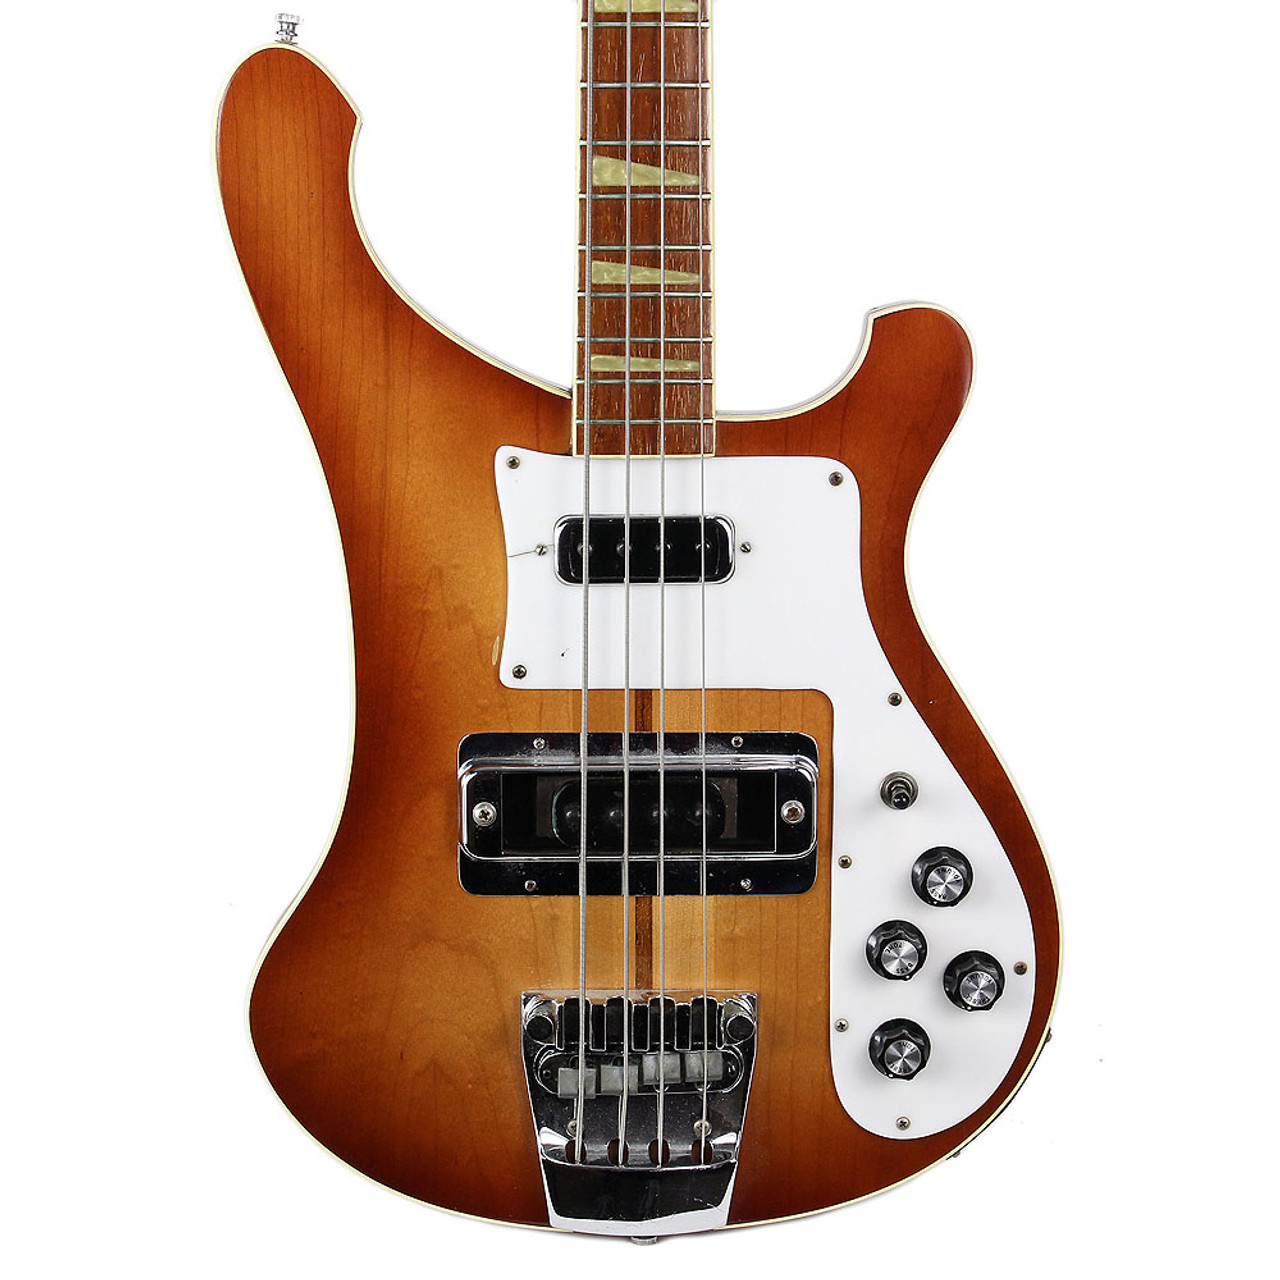 Vintage 1980 Rickenbacker 4001 Electric Bass Guitar Autumnglo Finish